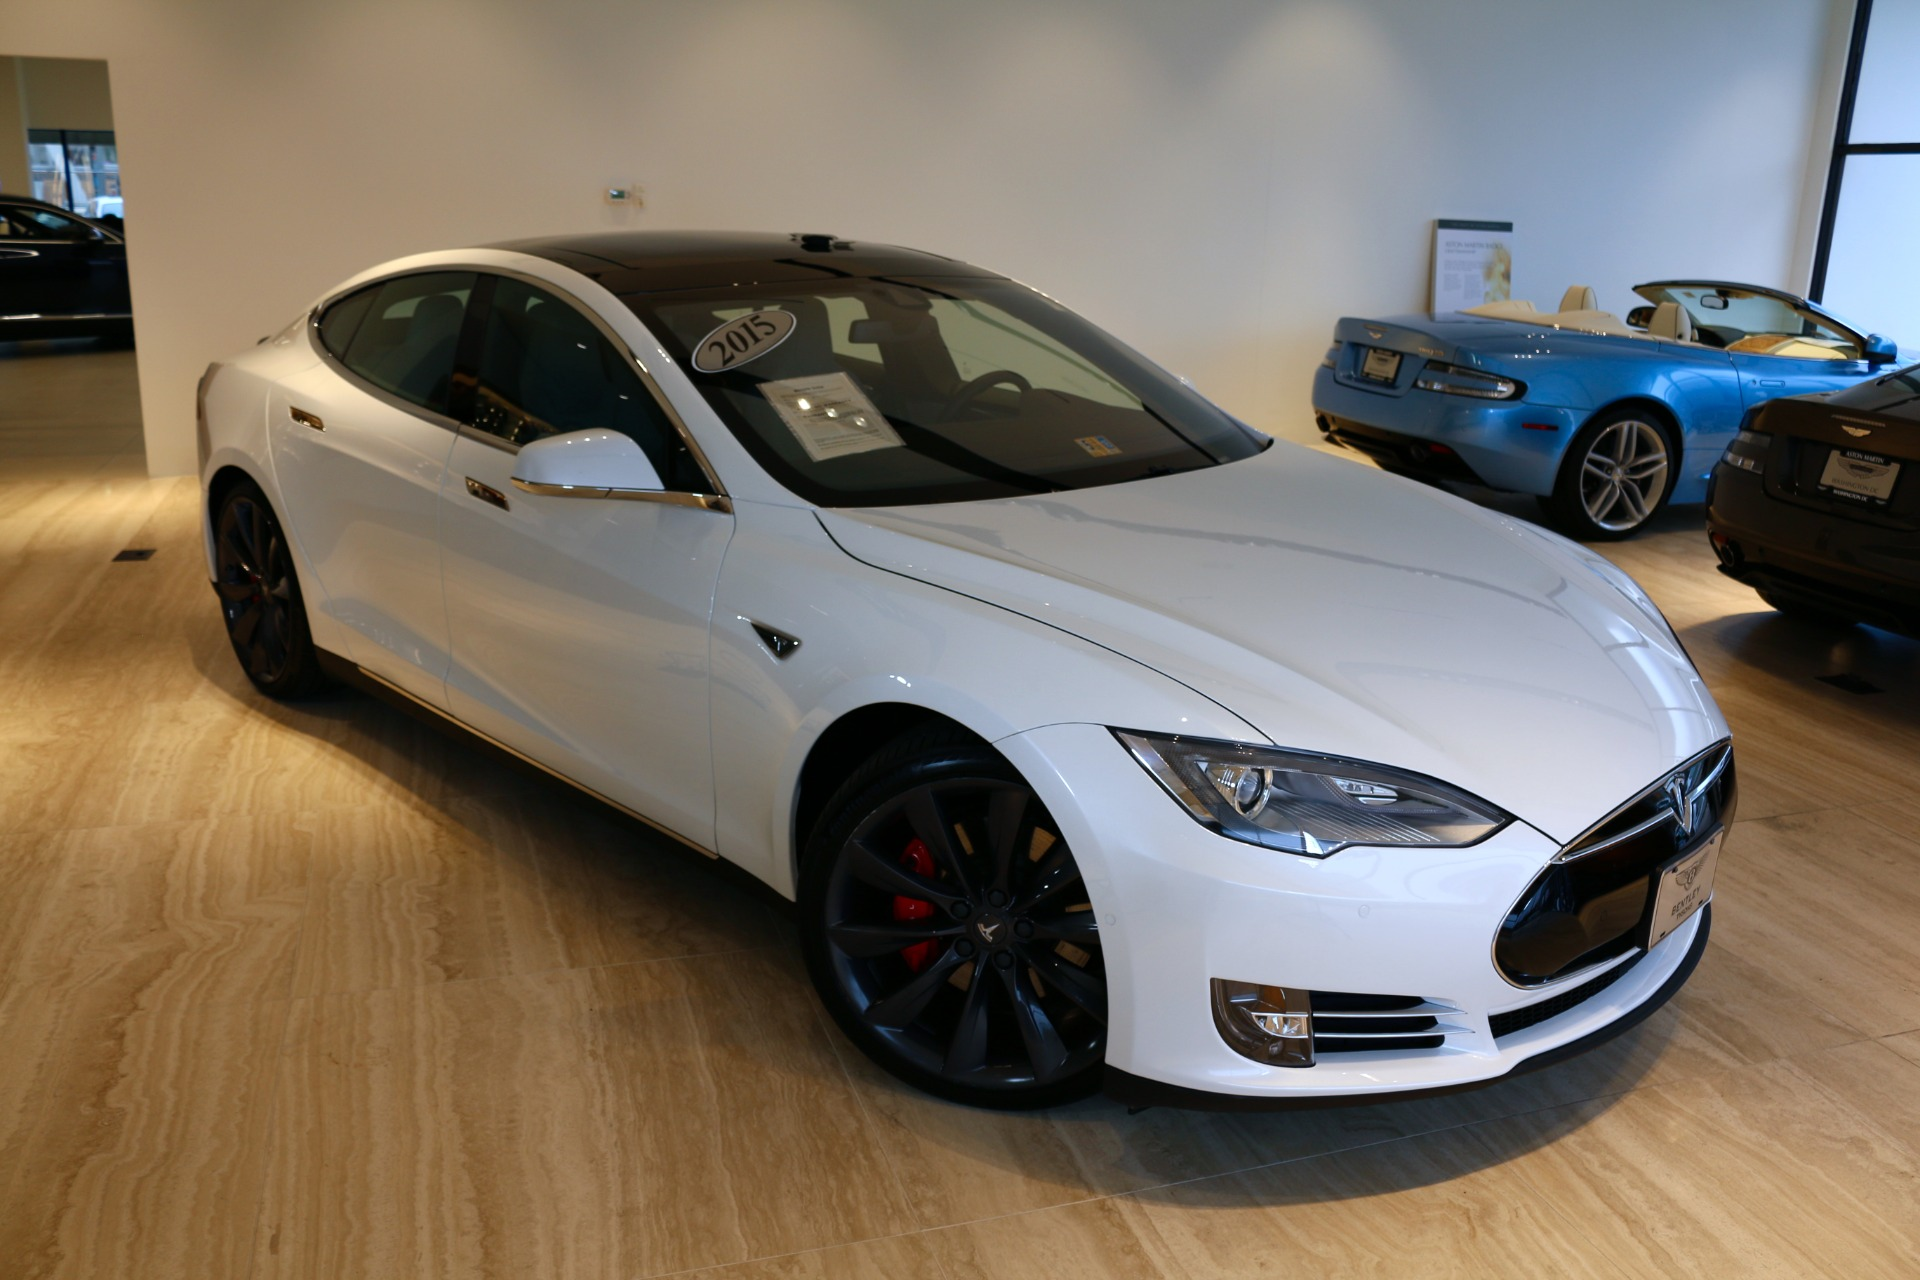 2015 tesla model s p85d stock 7nc016116a for sale near vienna va va tesla dealer for sale. Black Bedroom Furniture Sets. Home Design Ideas